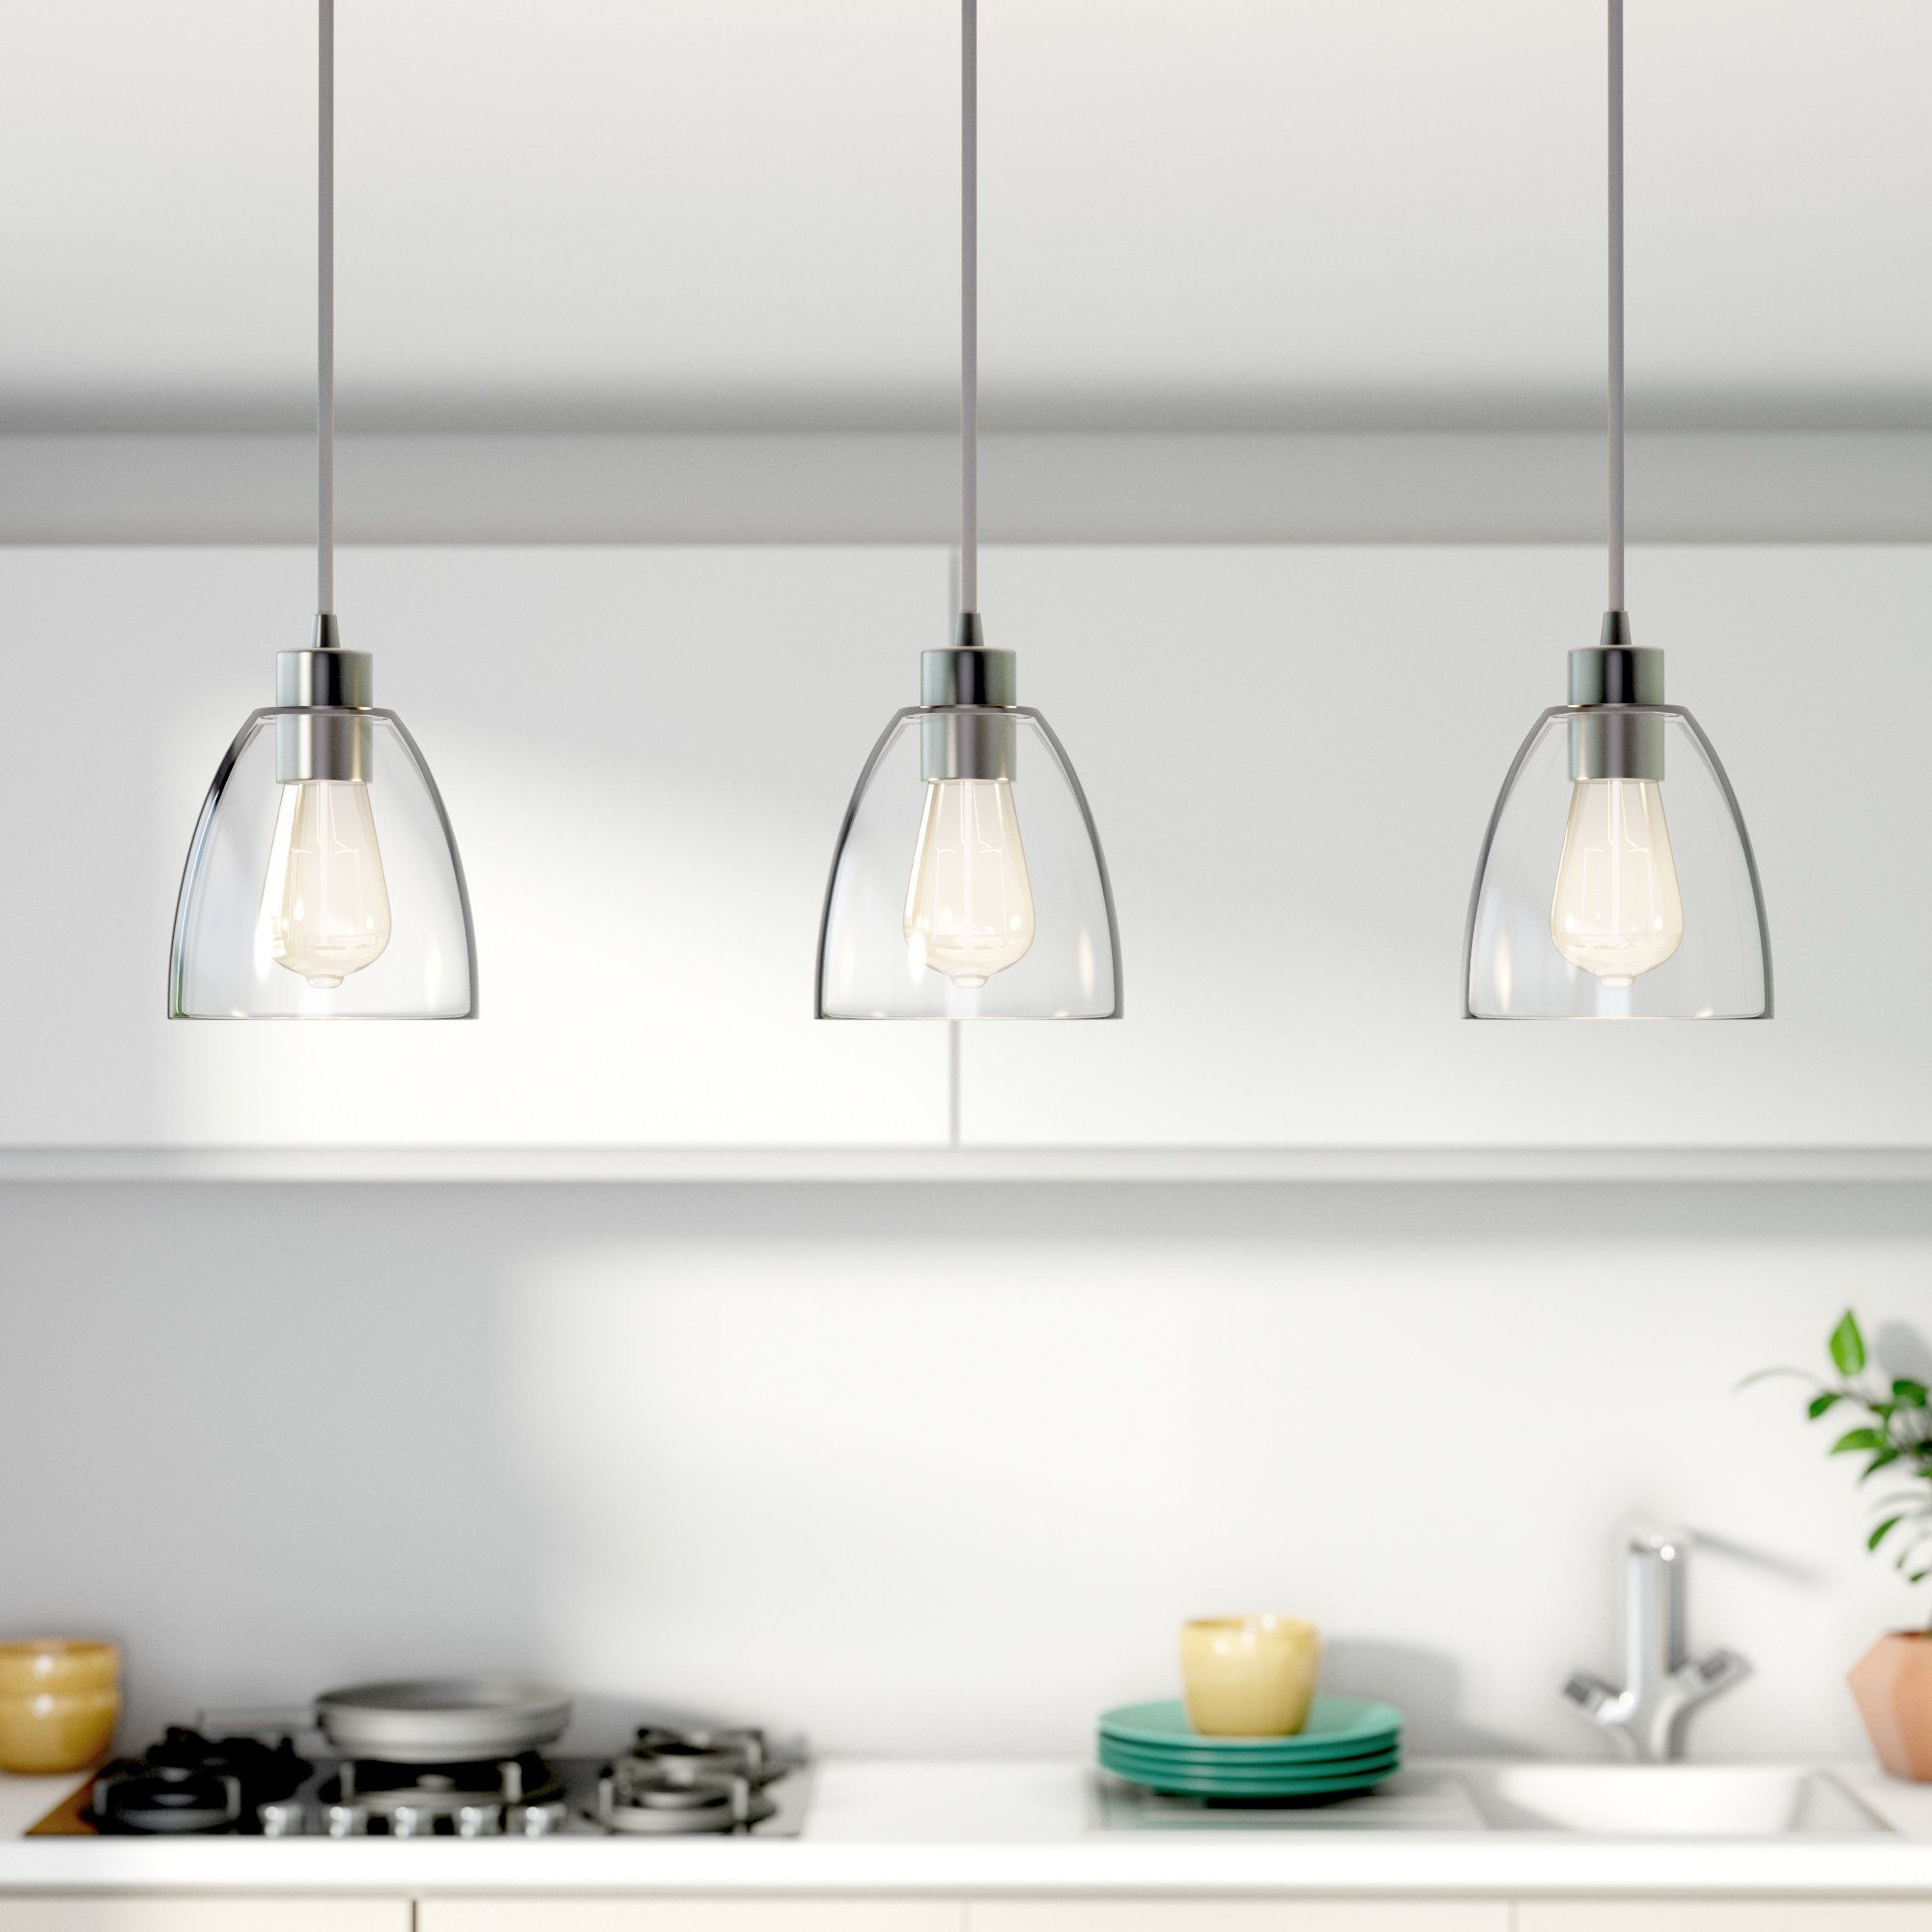 Light Pendants Cadorette 3 Light Kitchen Island Pendant Products In